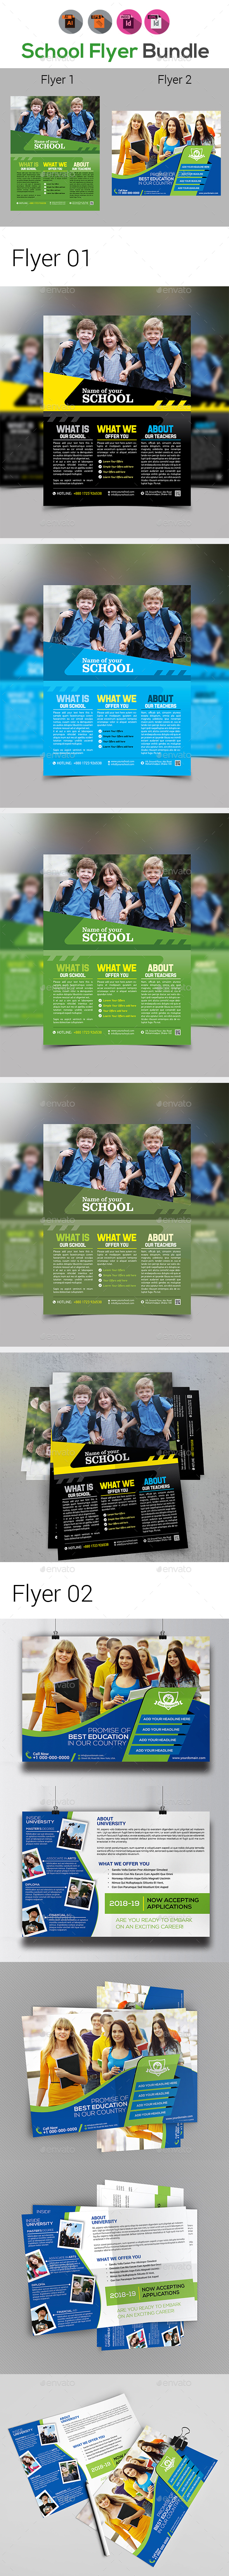 School Flyer Bundle Templates - Corporate Flyers